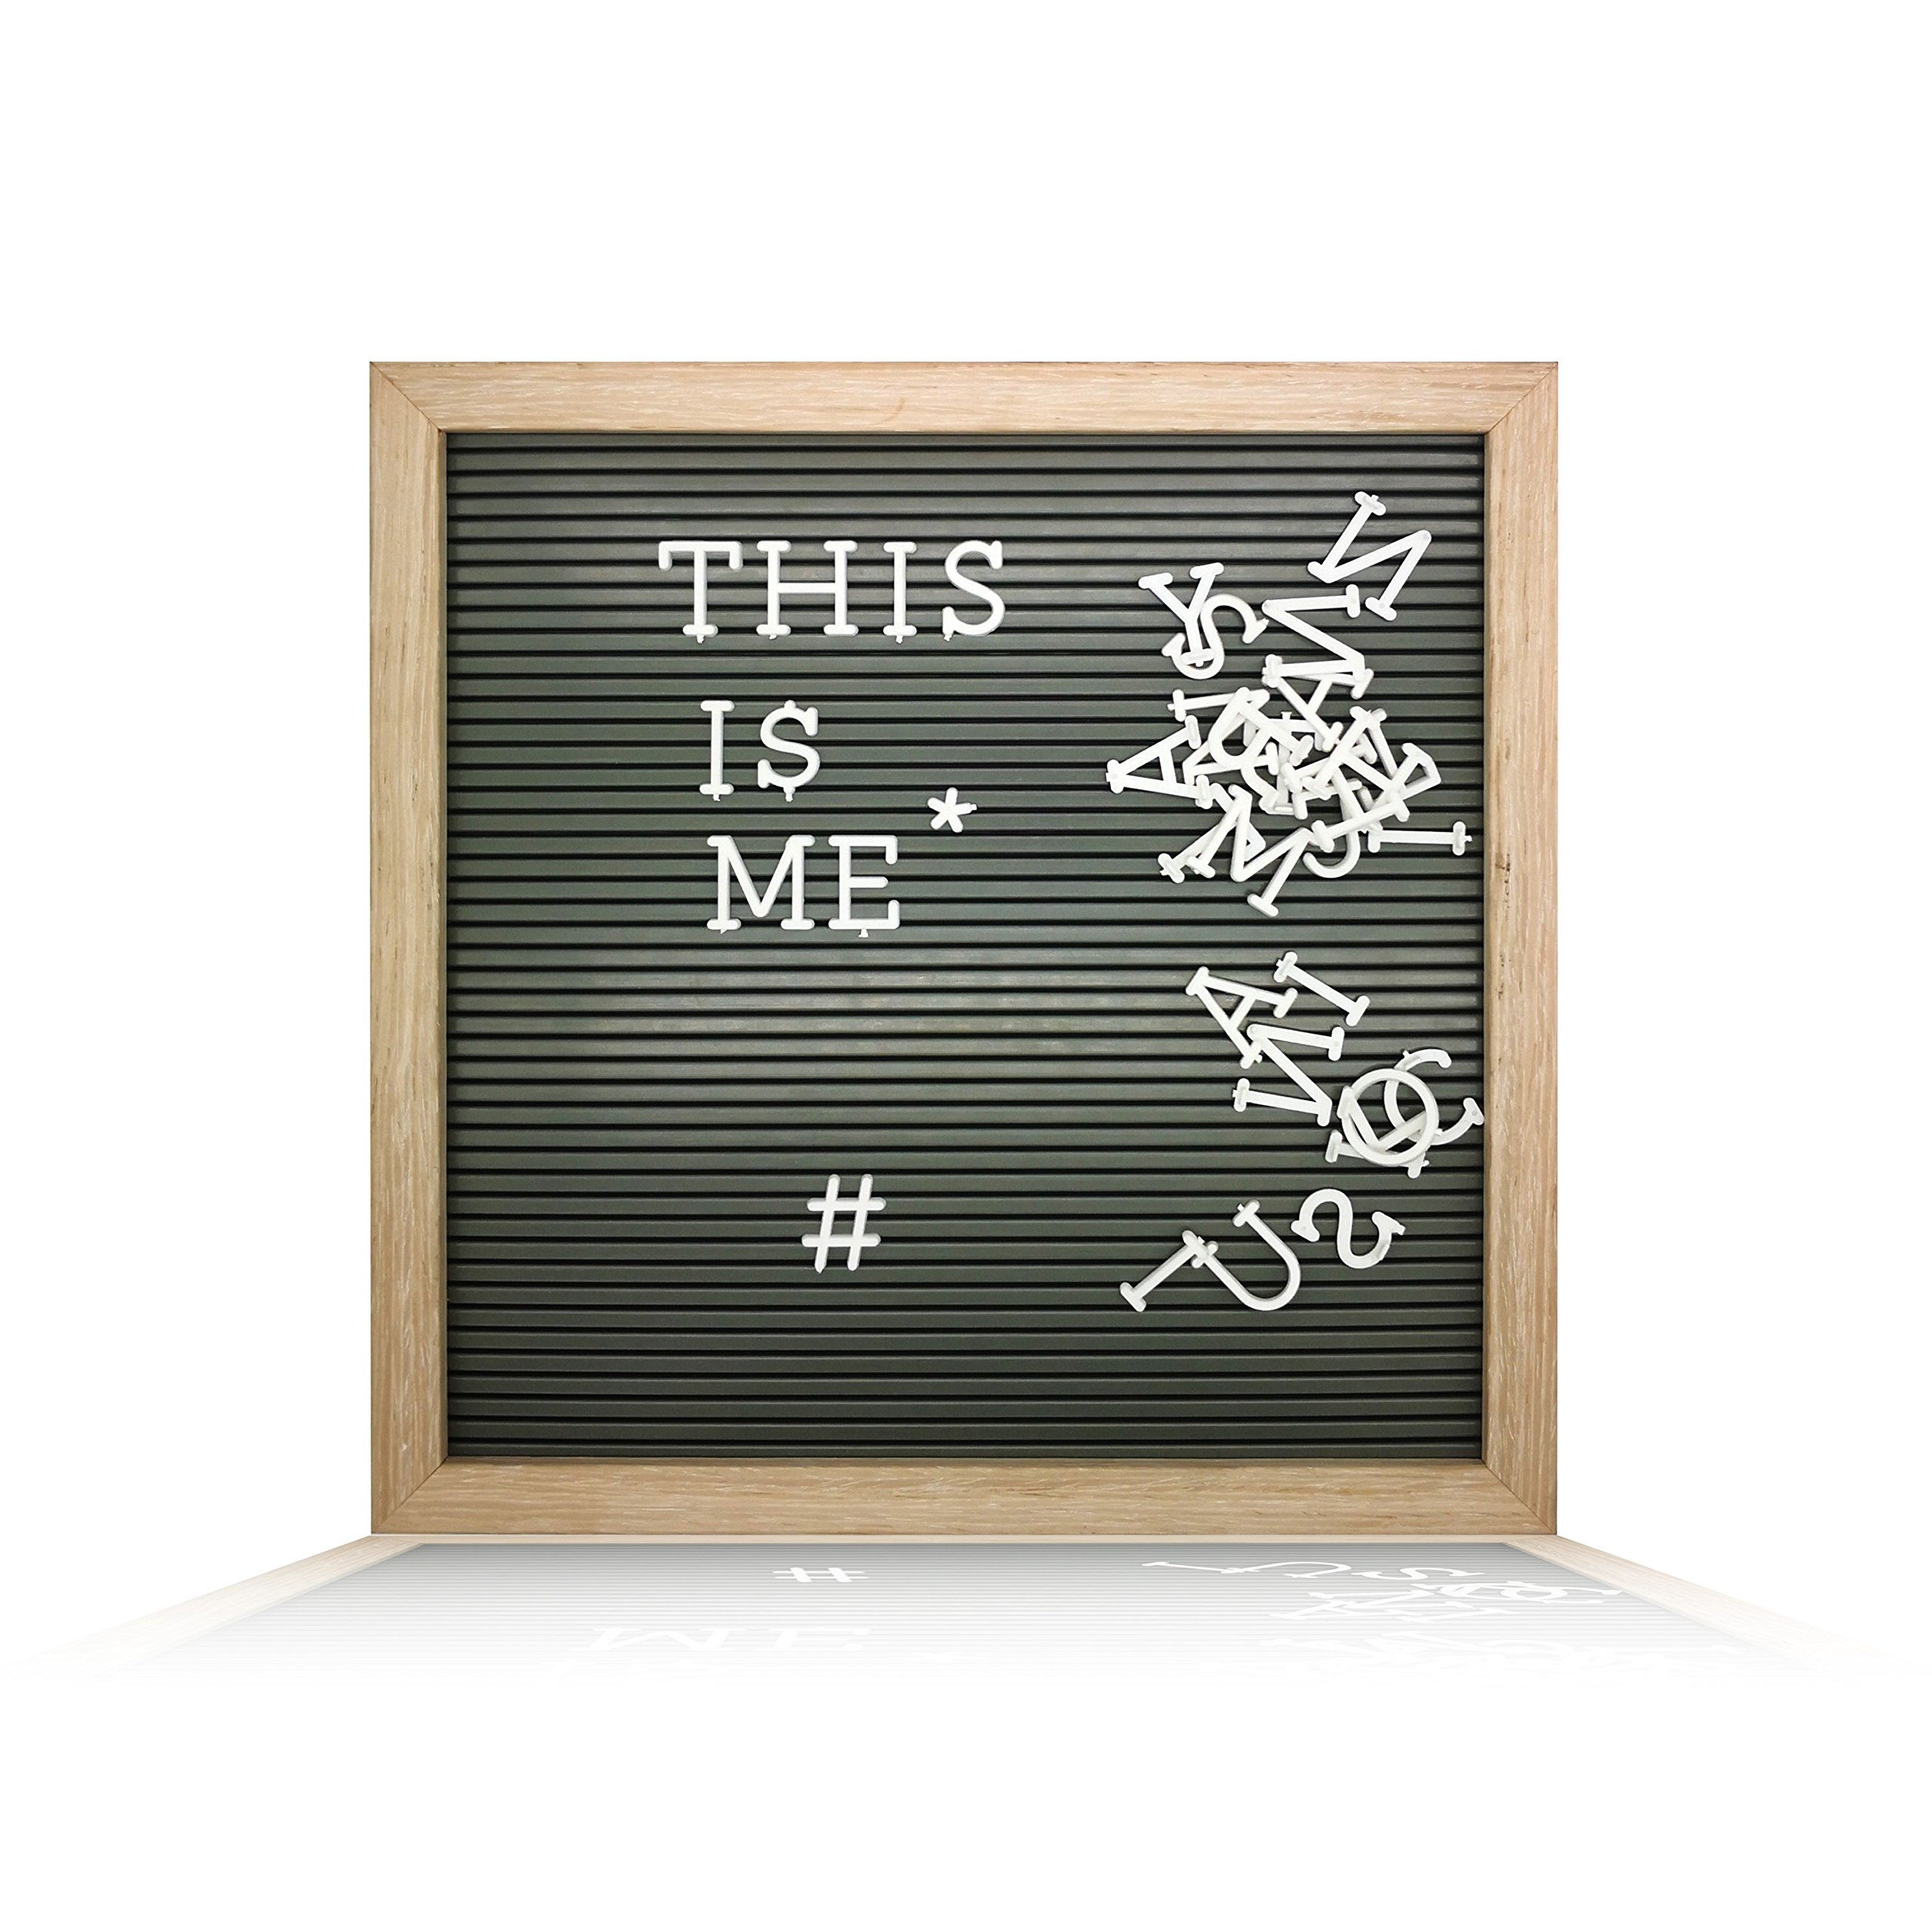 Plastic Letter Board (12'' x 12'') with 1 inch Letters - 188 Characters Include Plastic Letters, Numbers & Symbols, Changeable Letter Boards by Atoz Create, (Wooden Color Frame & Grey Board)